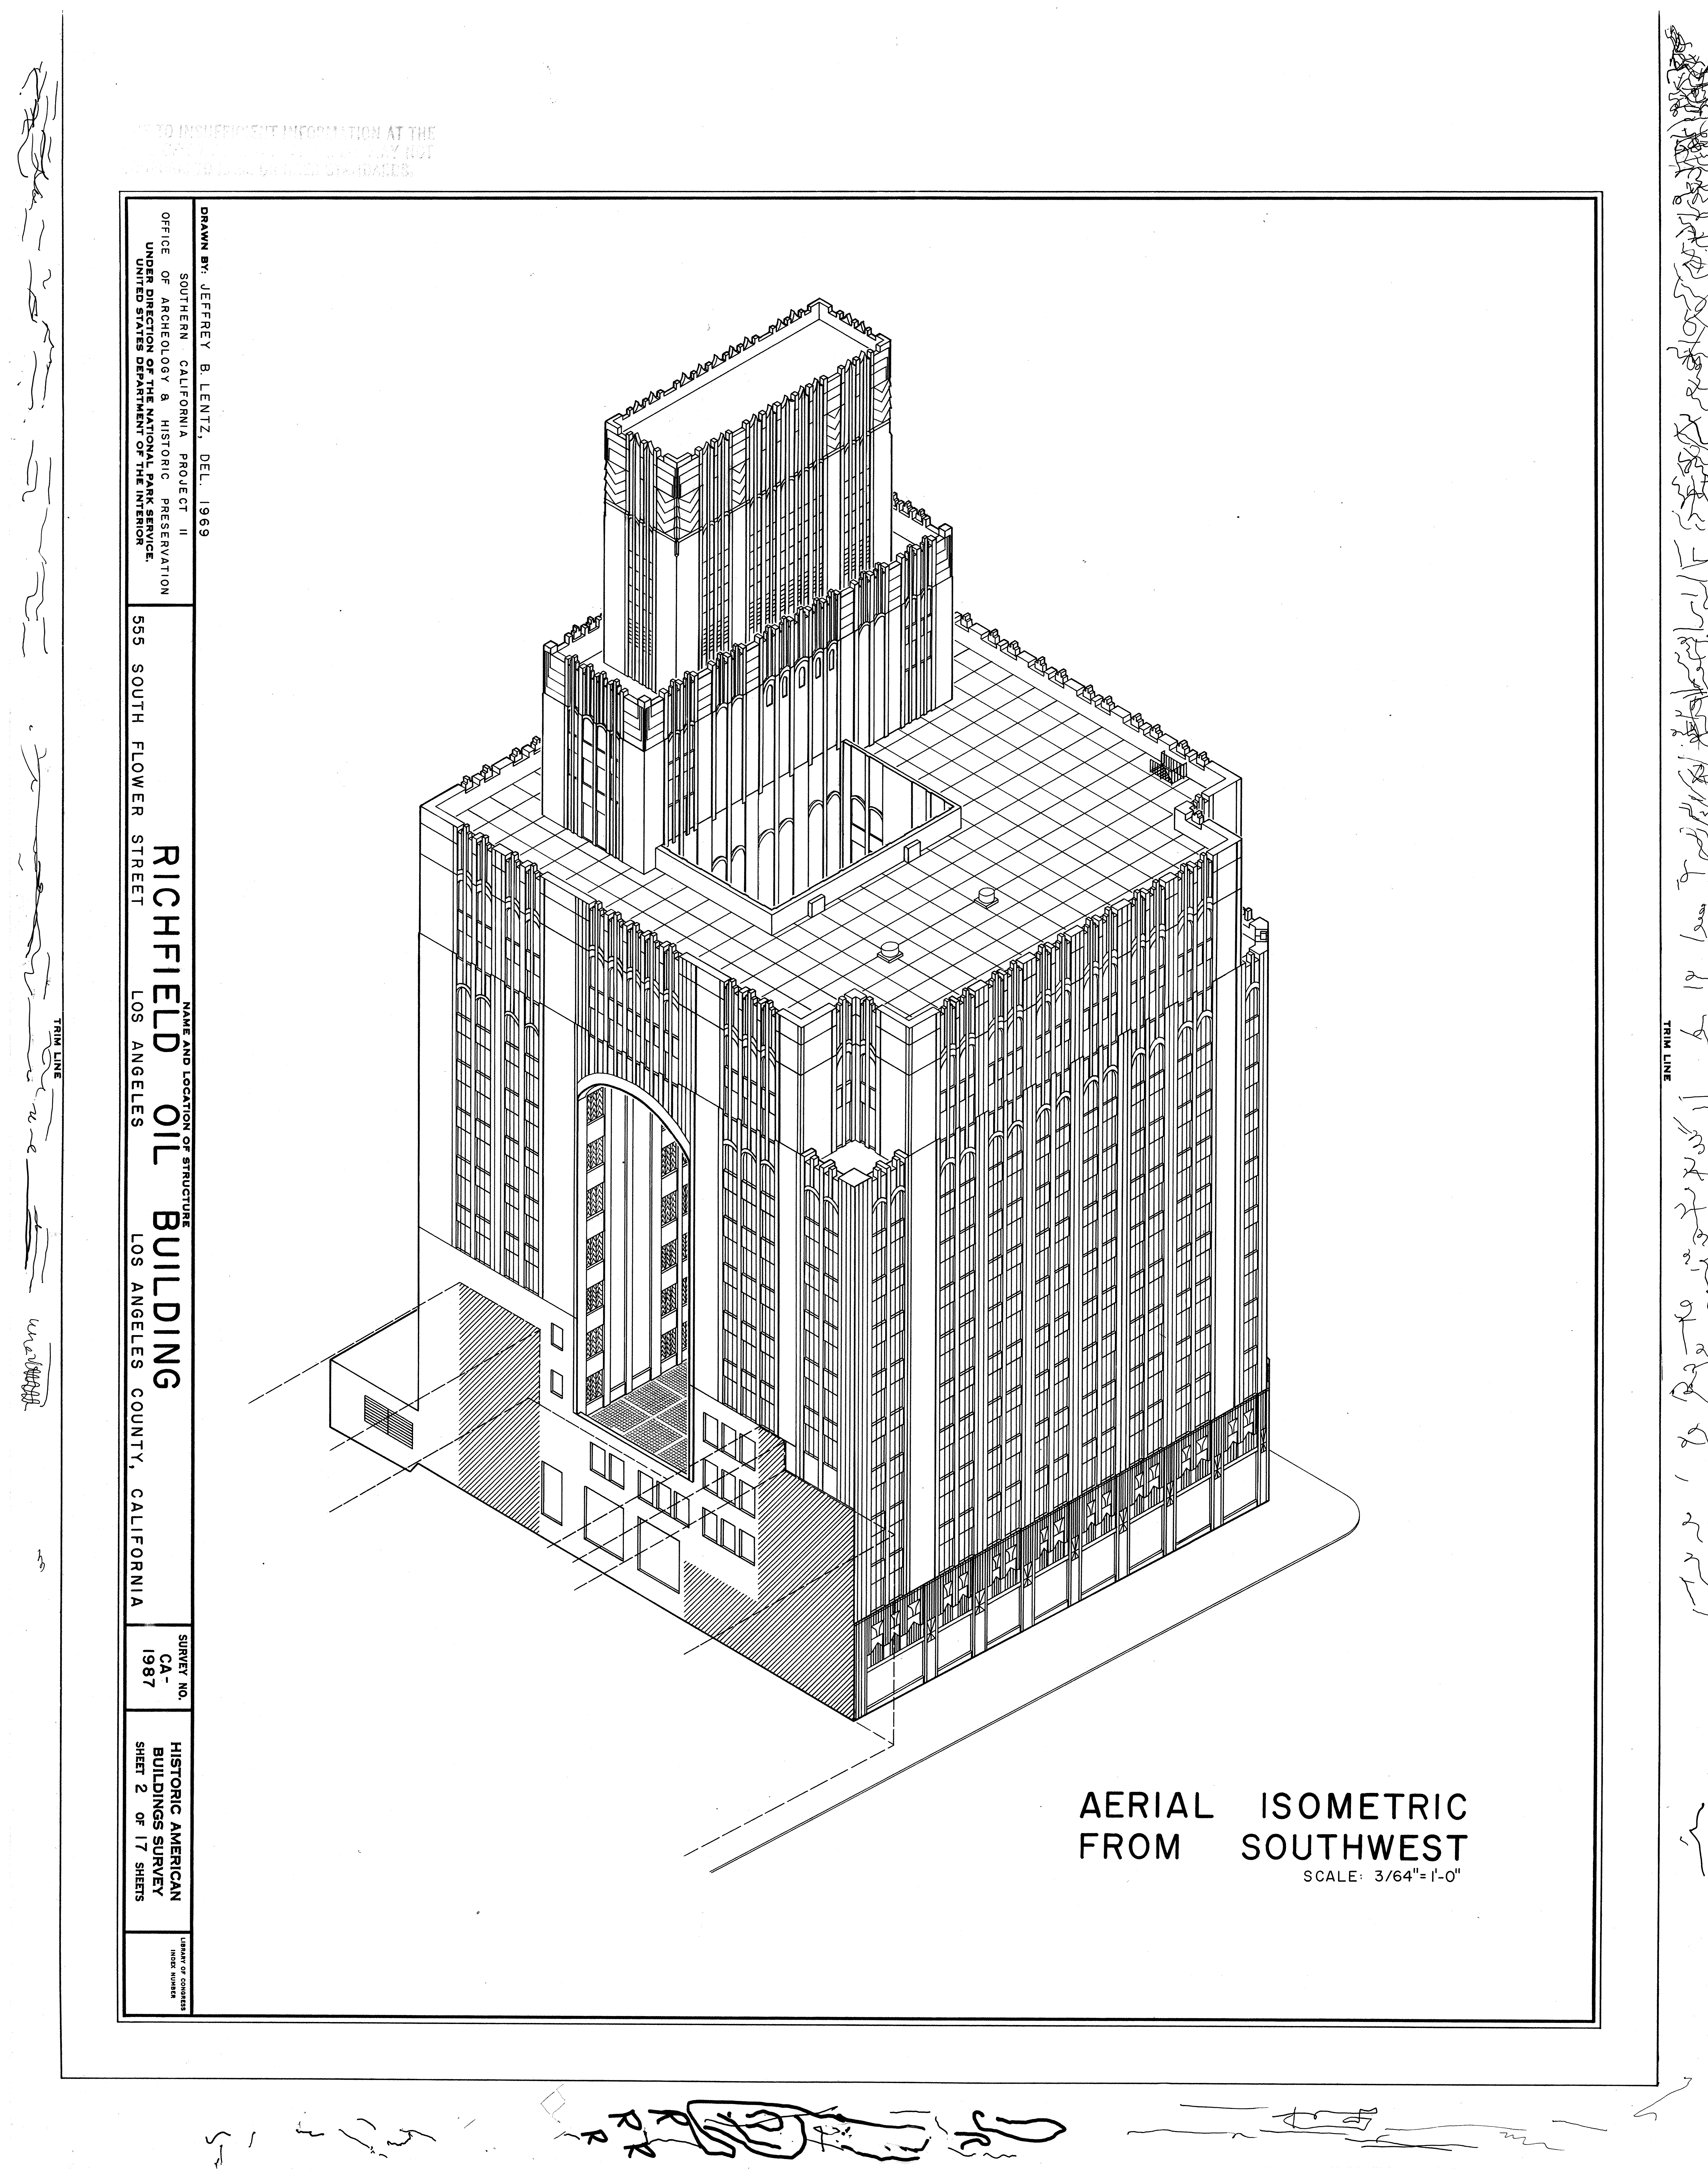 Filerichfield Oil Building 555 South Flower Street Los Angeles Cv Joint Diagram